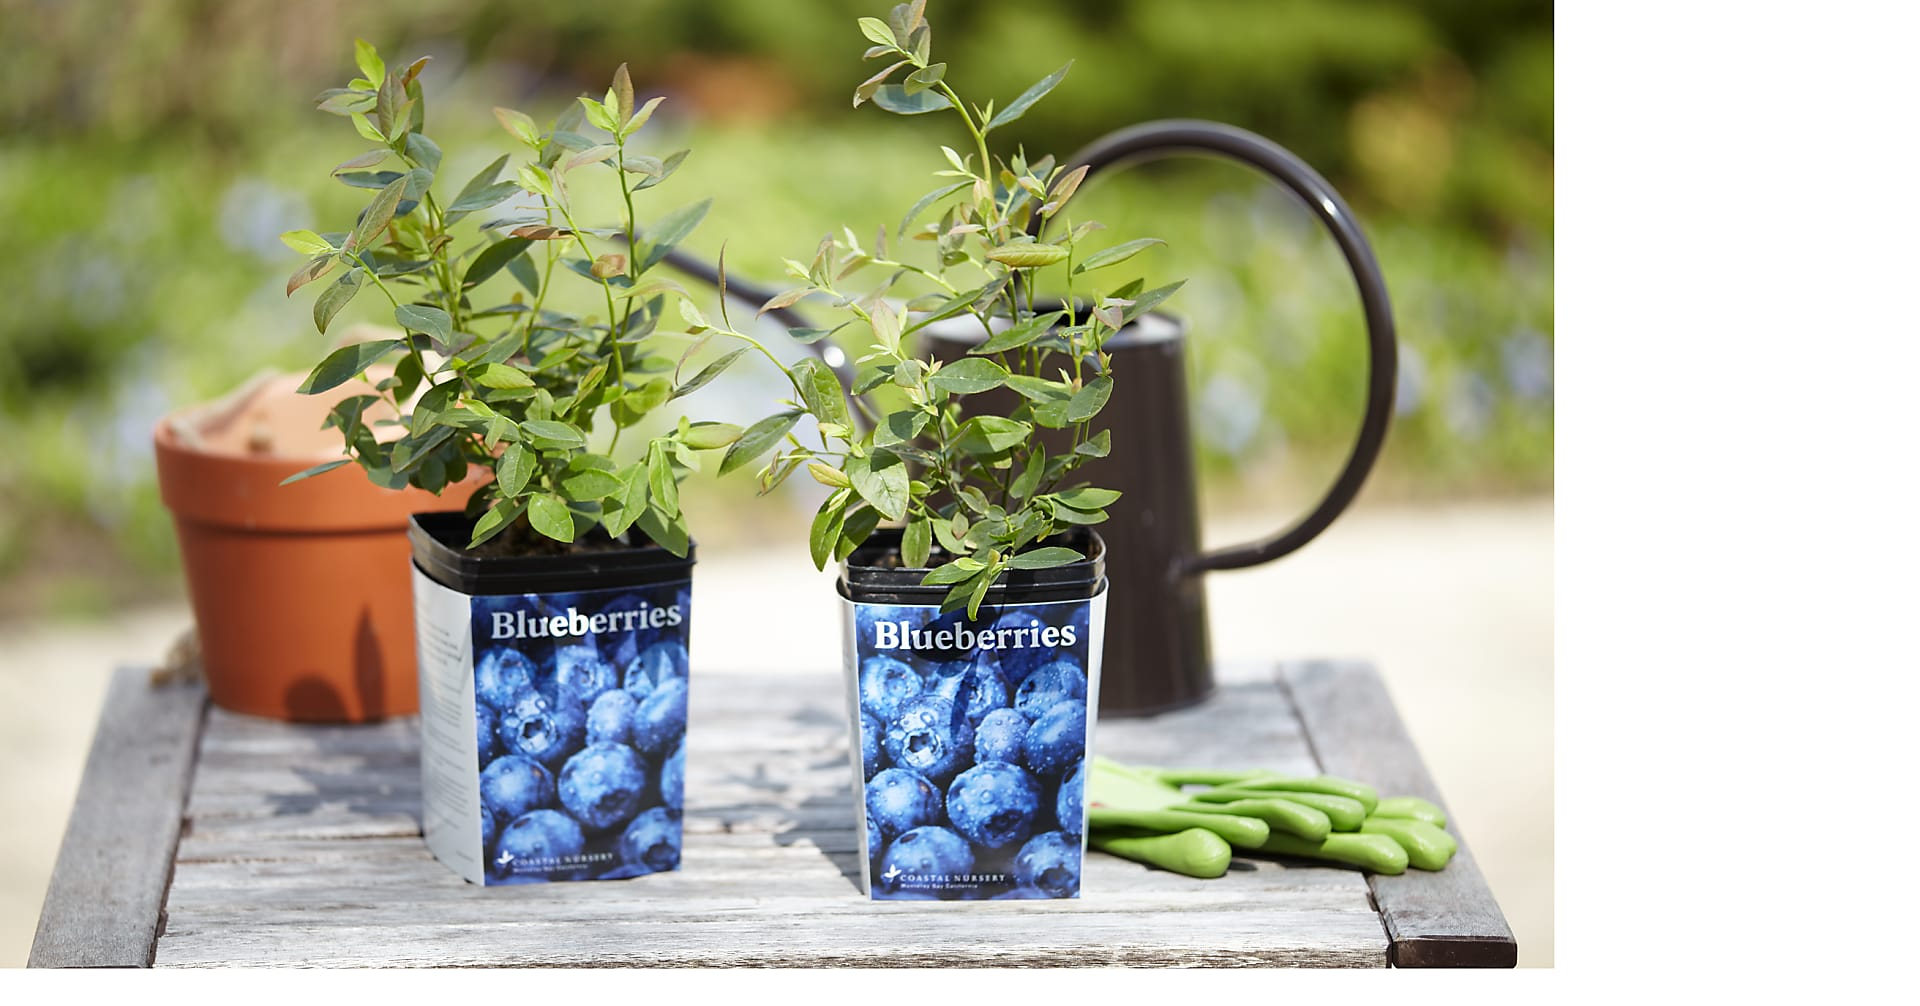 Blueberry Garden Kit - Image 3 Of 4